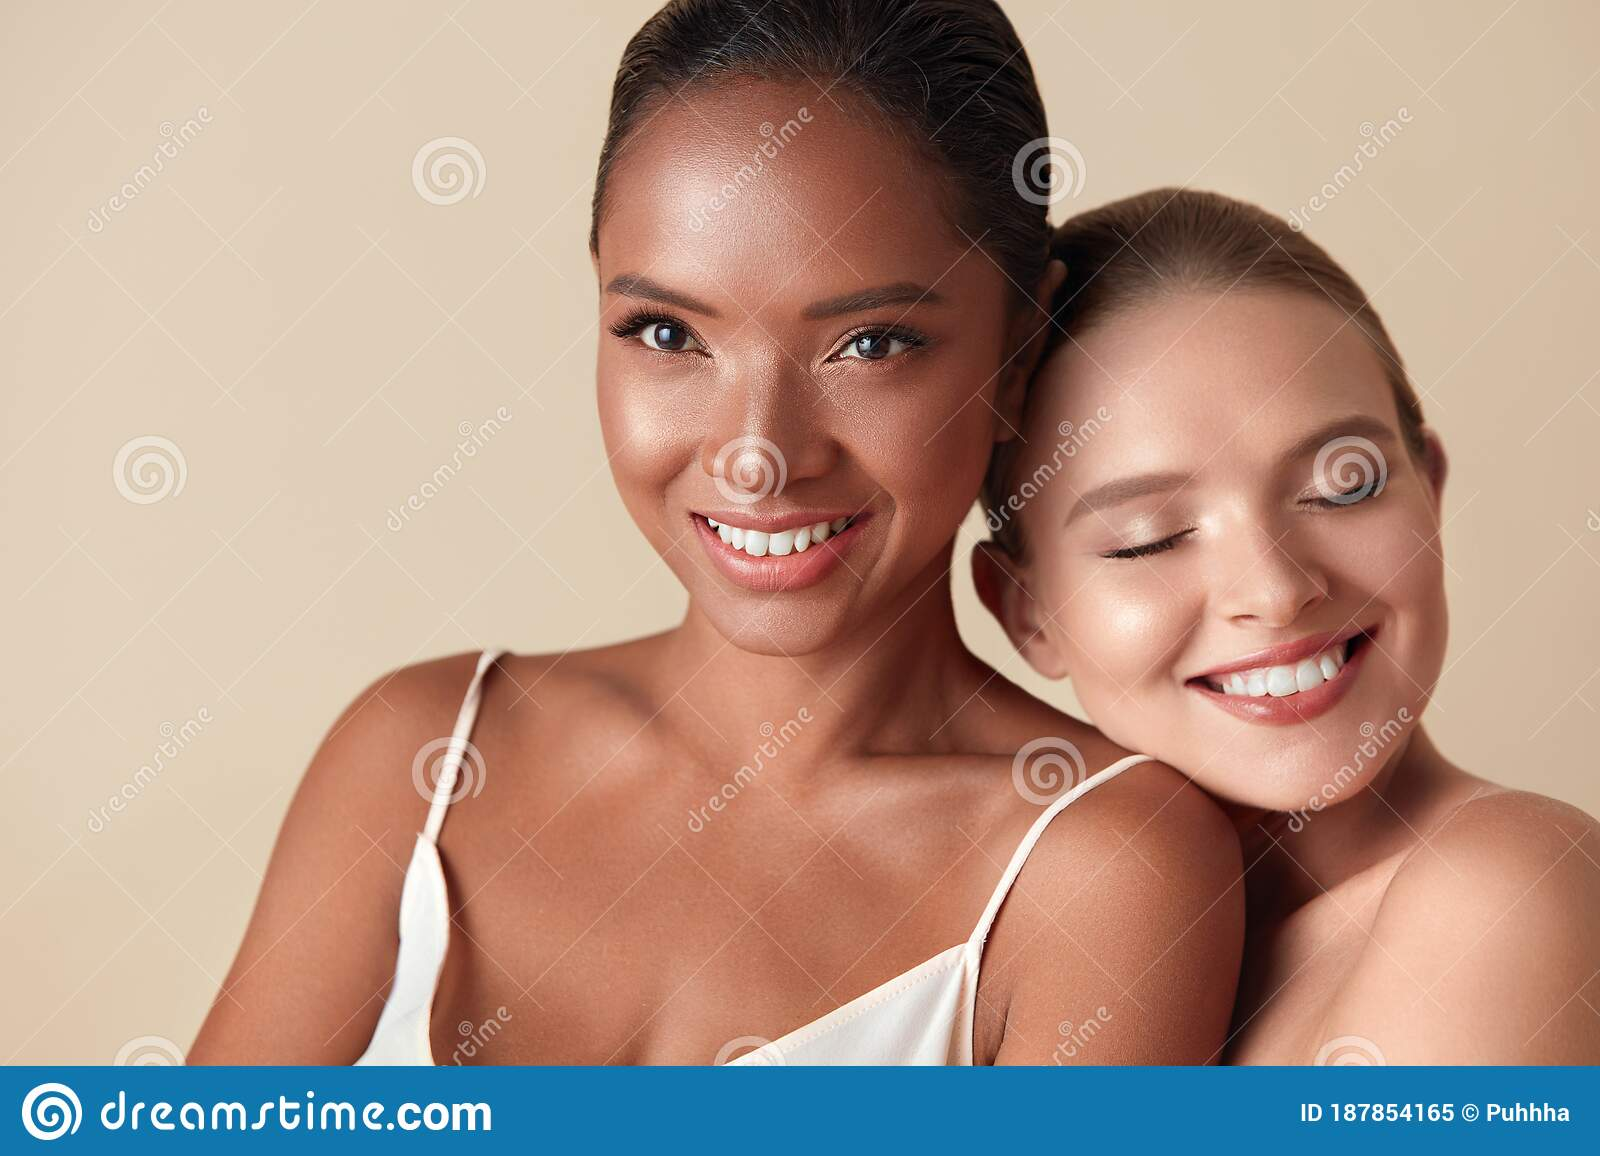 Naked girls different ethnicity 2 212 Ethnic Nude Photos Free Royalty Free Stock Photos From Dreamstime